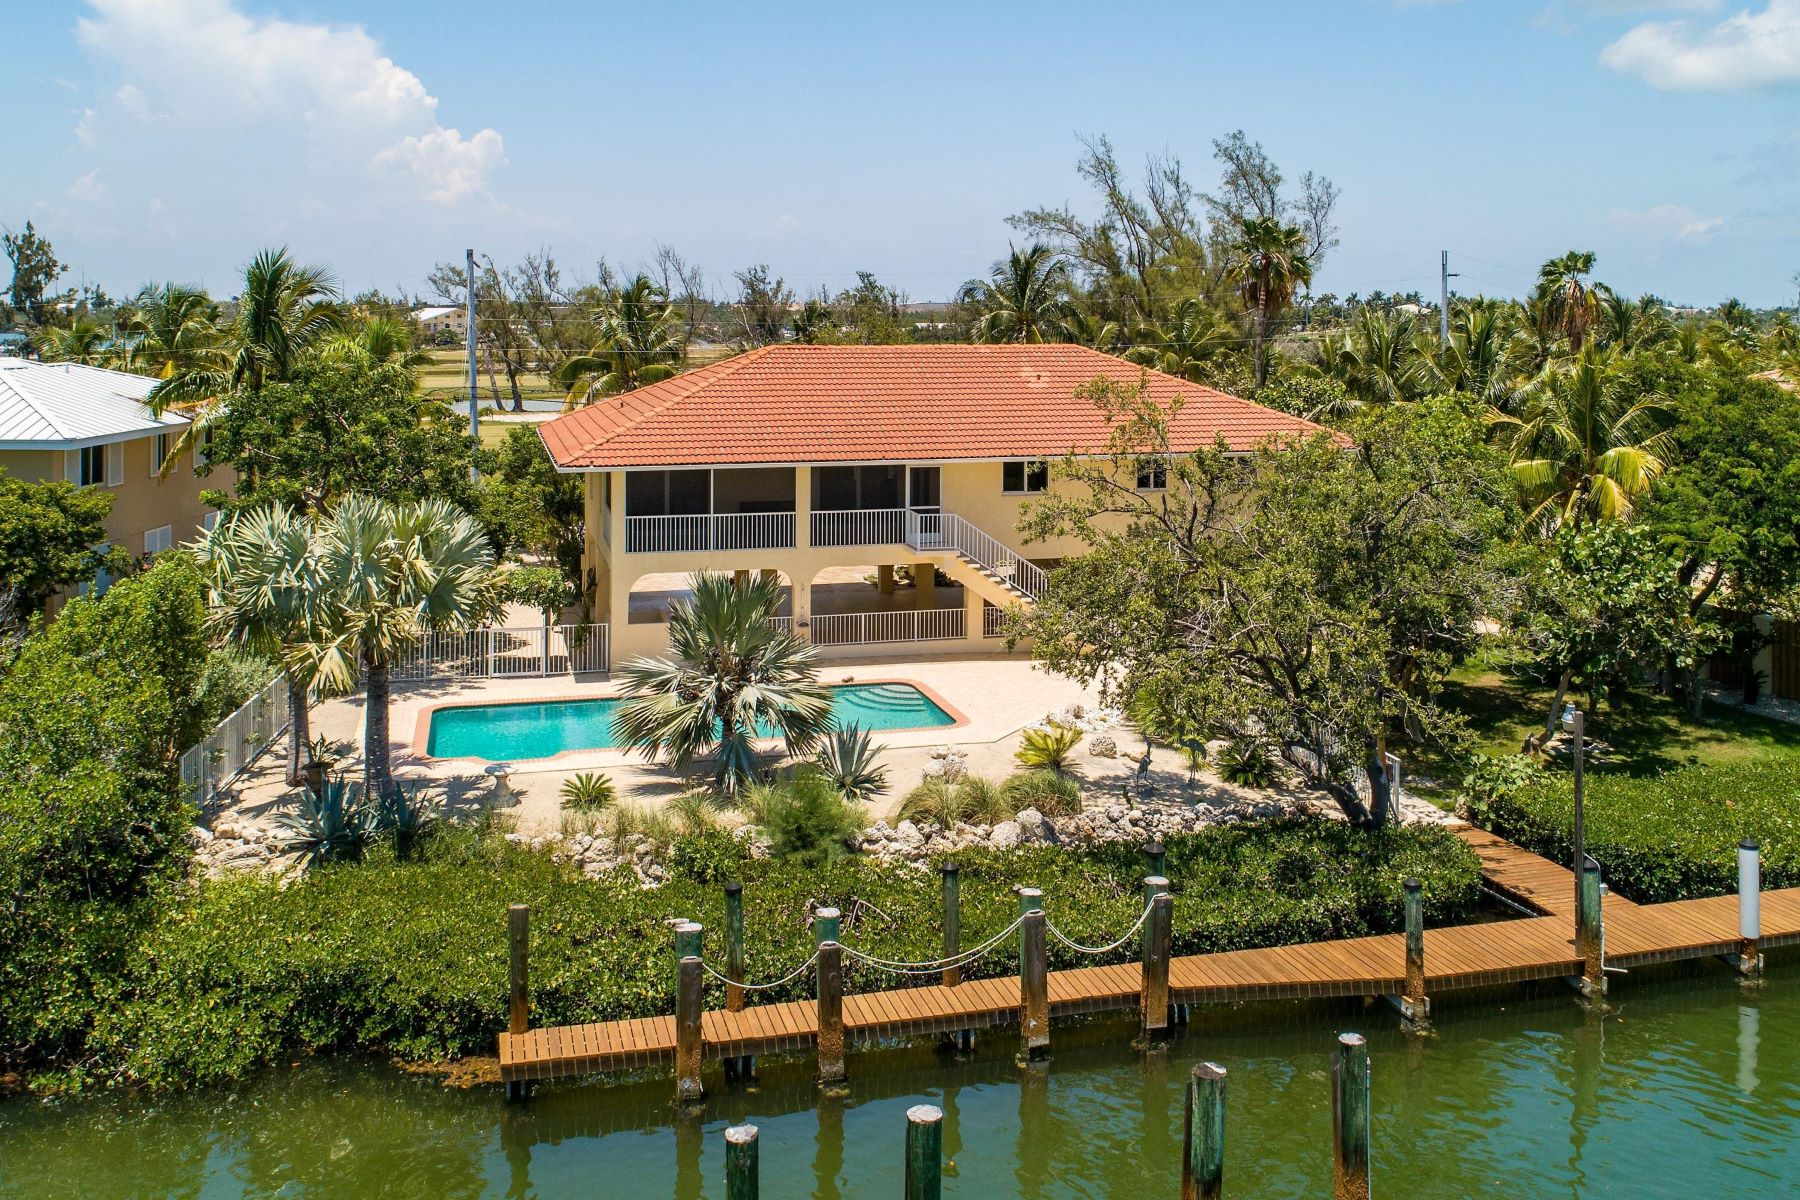 Single Family Homes for Sale at 2697 Sombrero Boulevard, Marathon, FL 2697 Sombrero Boulevard Marathon, Florida 33050 United States